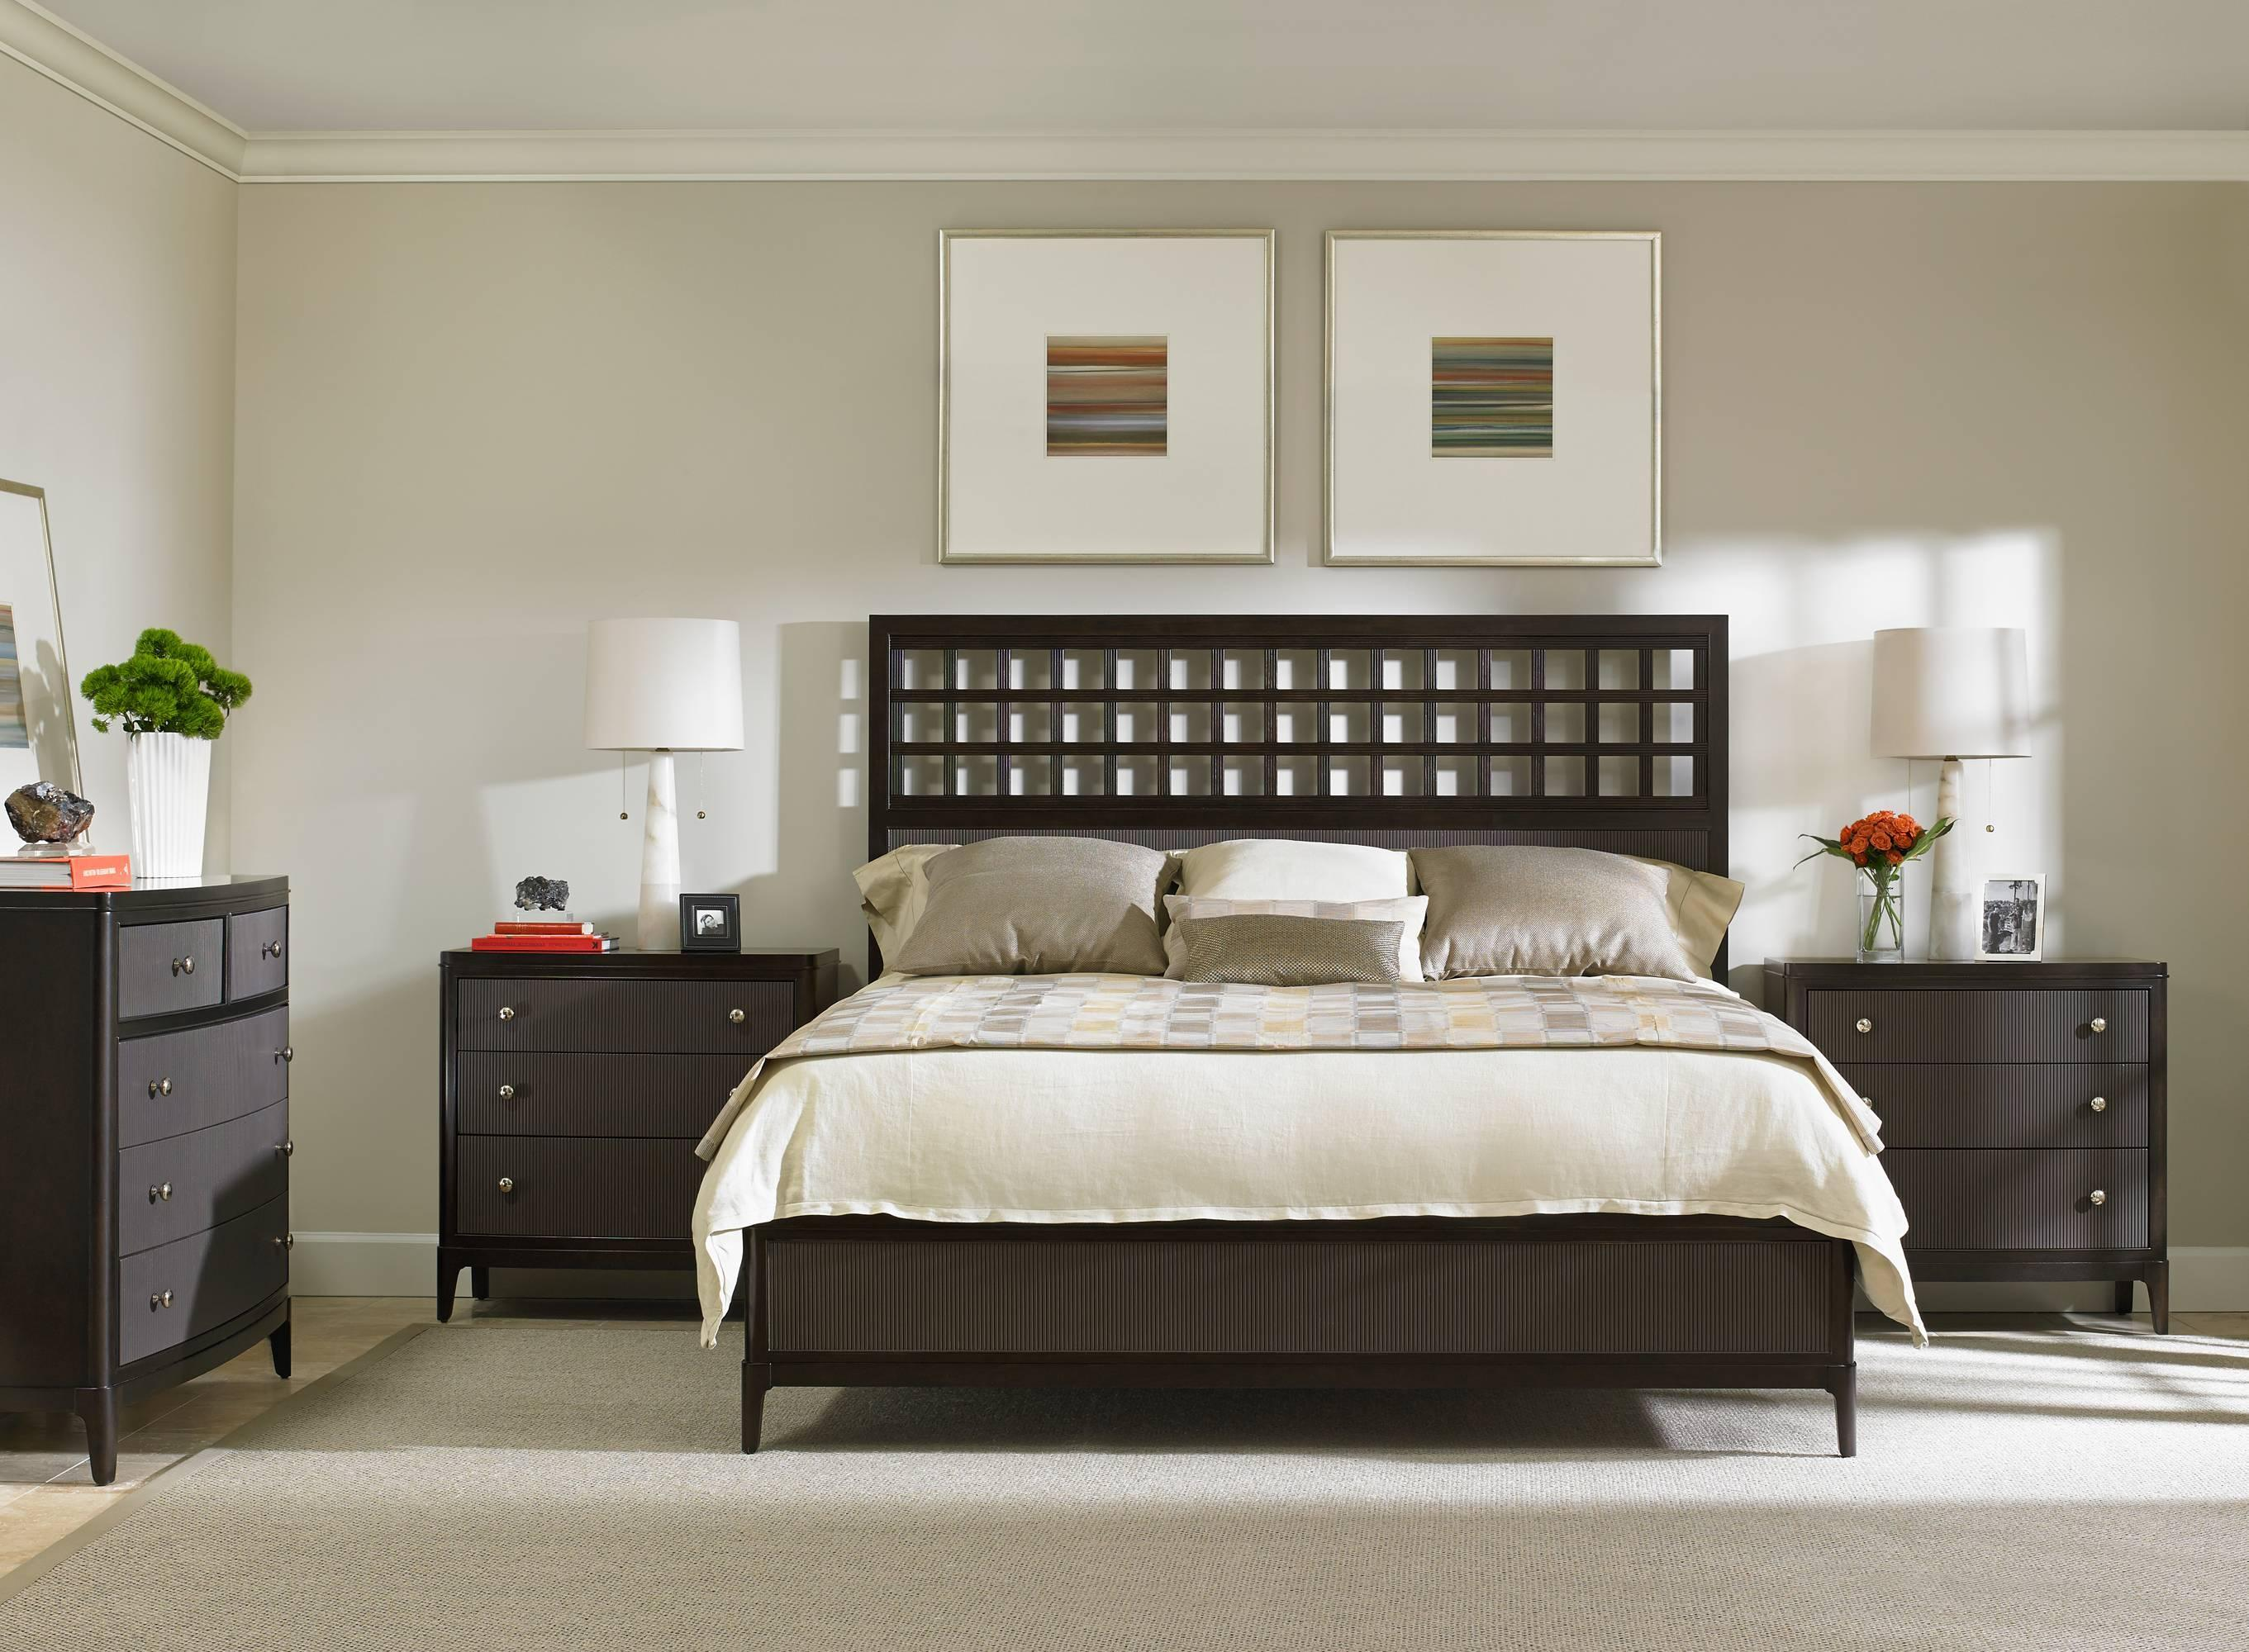 Stanley Furniture Wicker Park  Queen Bedroom Group - Item Number: 409-13 Q Bedroom Group 2